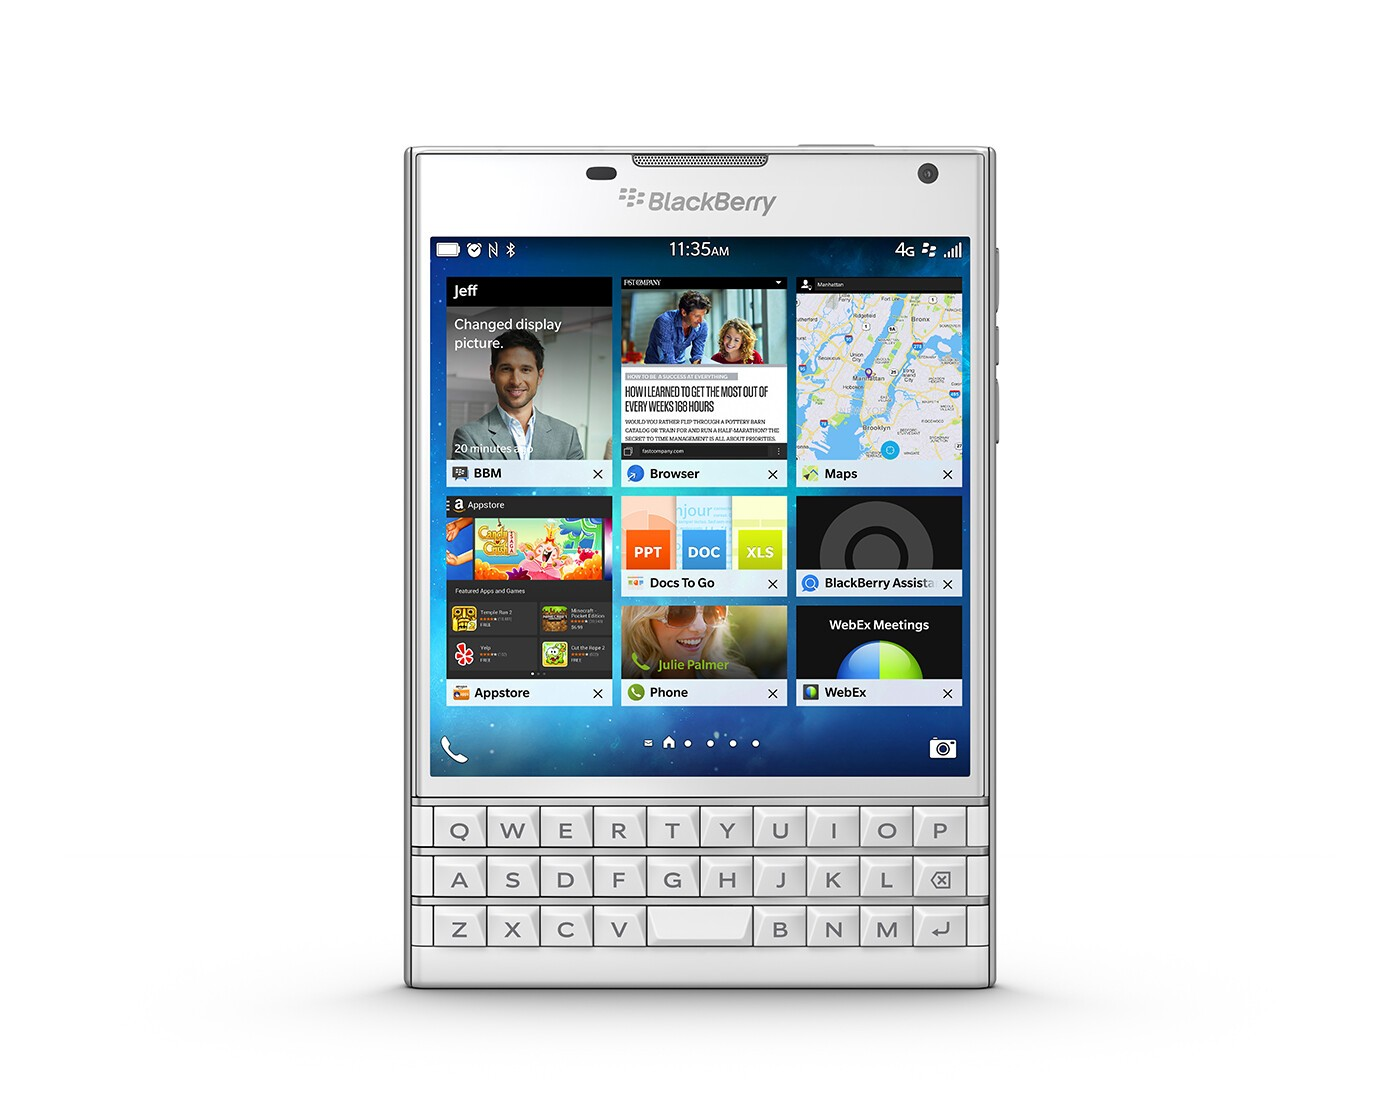 BlackBerry Q10 apps in BlackBerry World to be automatically available for the BlackBerry Passport